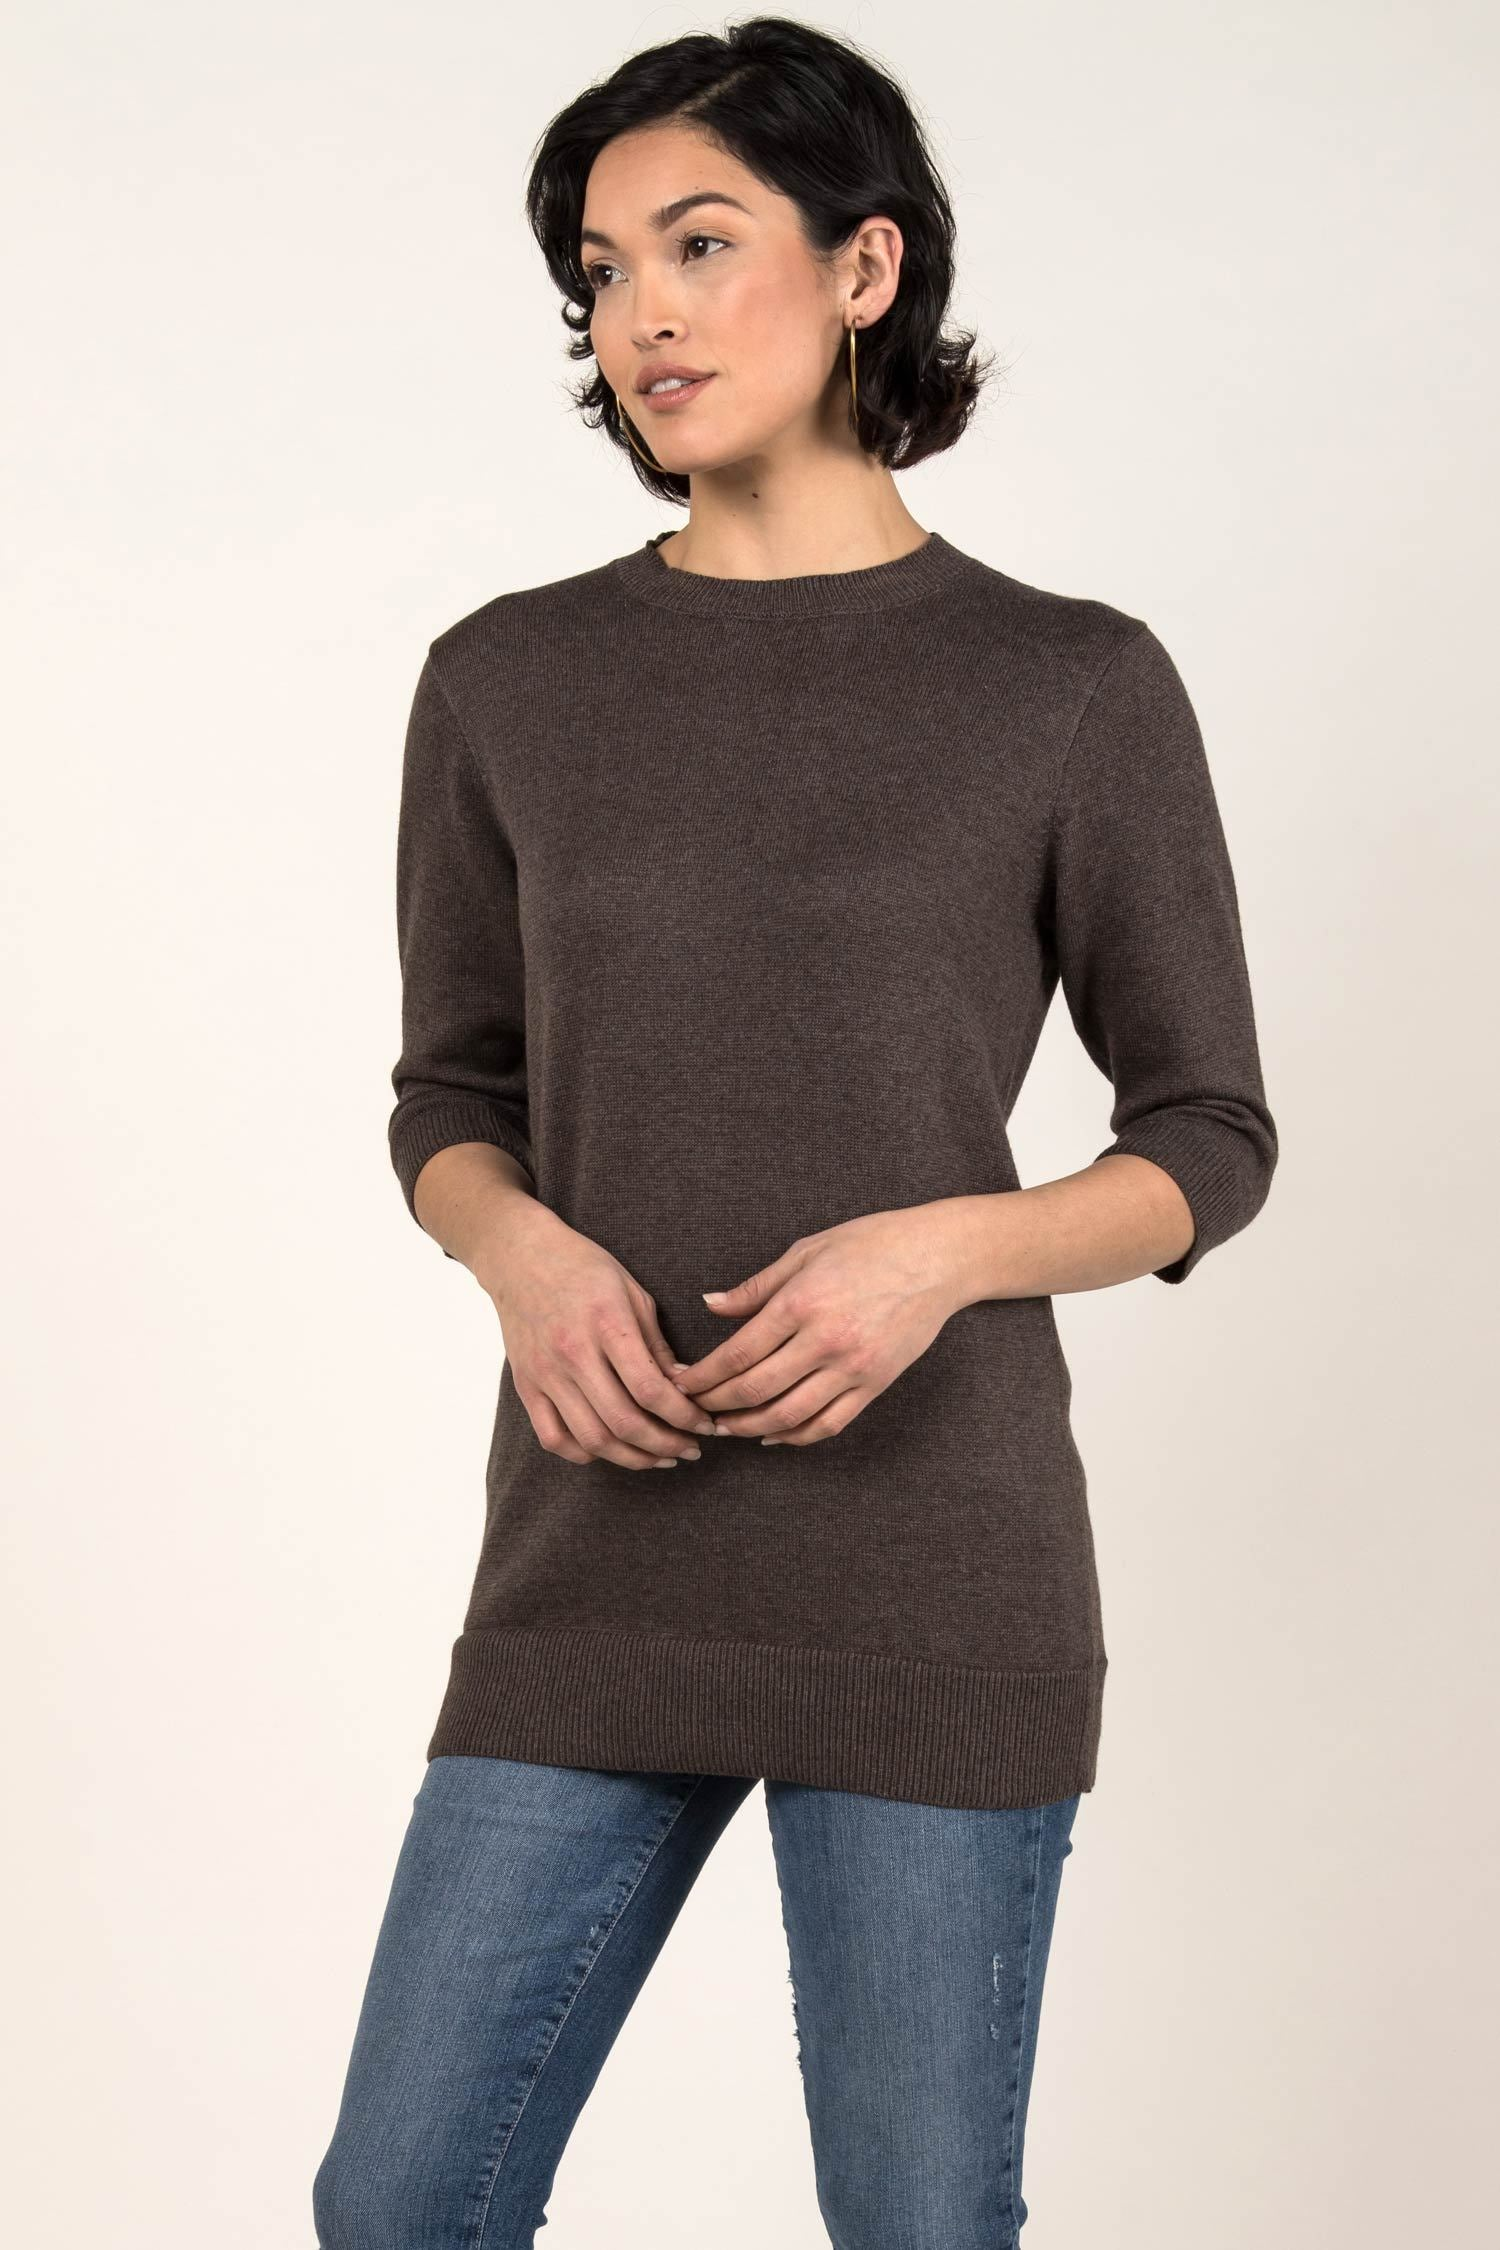 Womens Organic Cotton Top | Knit Elbow Sleeve Tunic Sweater | Stone Brown